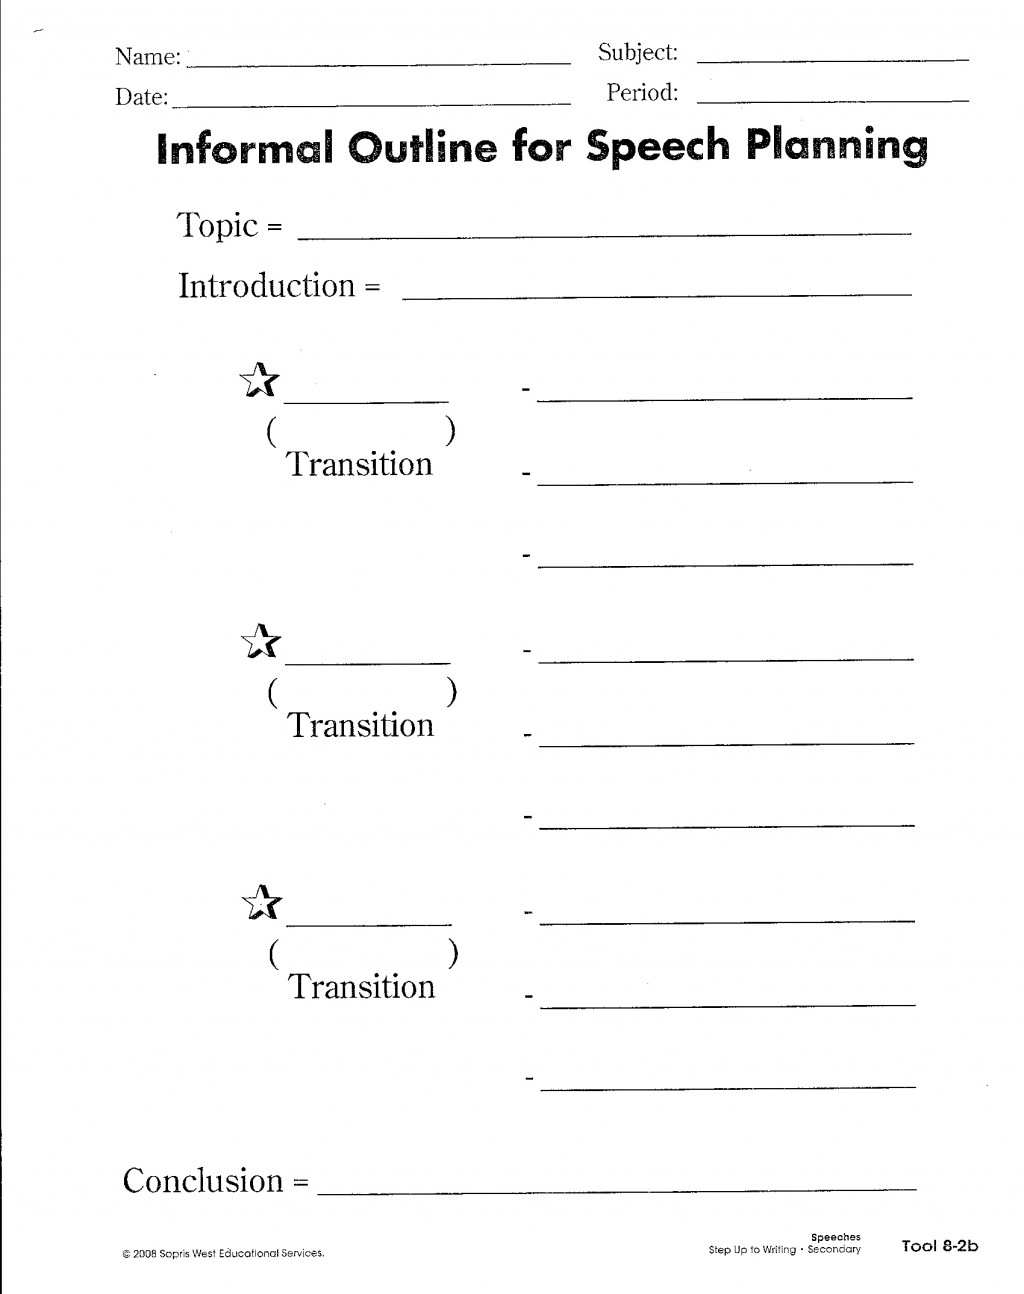 023 Basic Research Paper Outline Suw Planning Your Speech With An Informal Imposing Easy Template Large